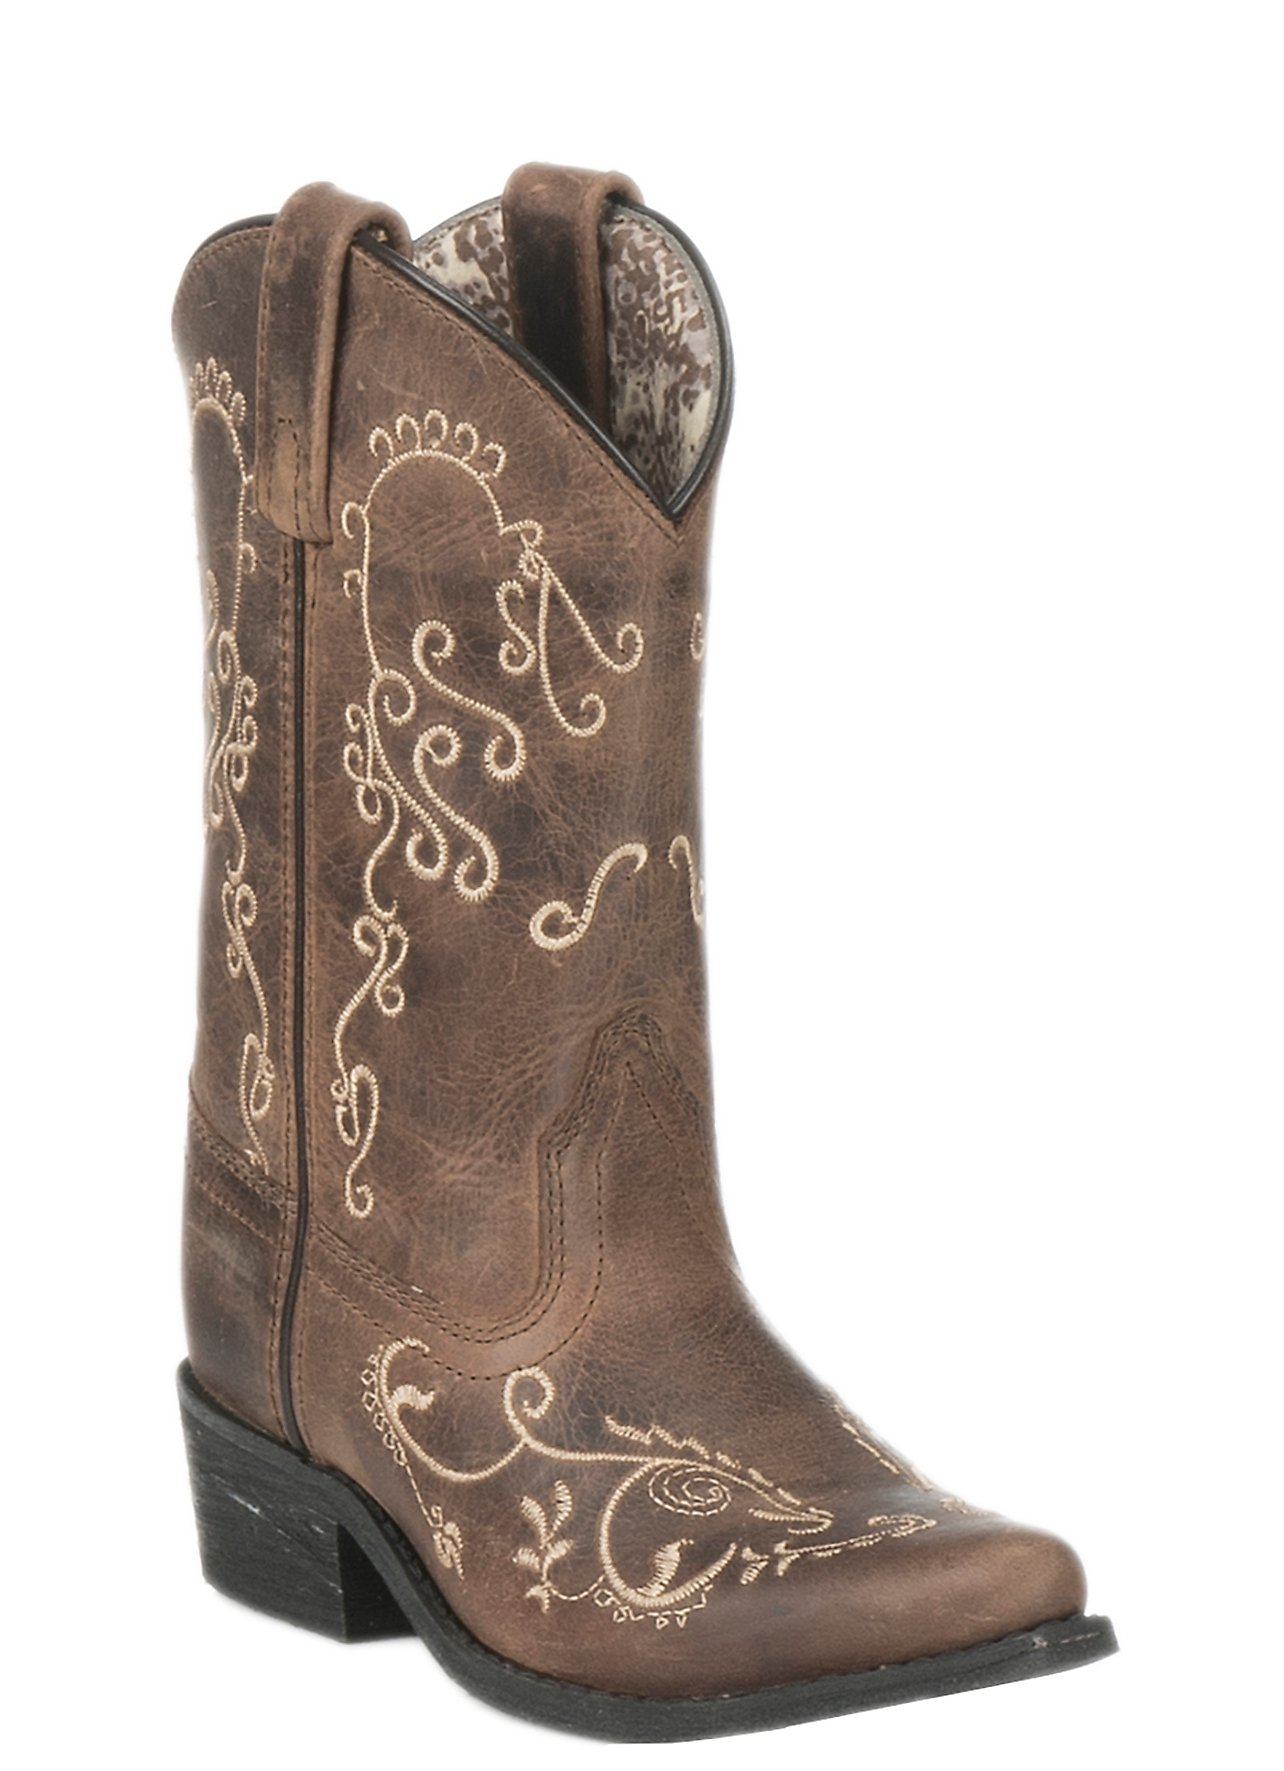 Kids Cowboy Boots Girls Cowgirl & Boys Cowboy Boots